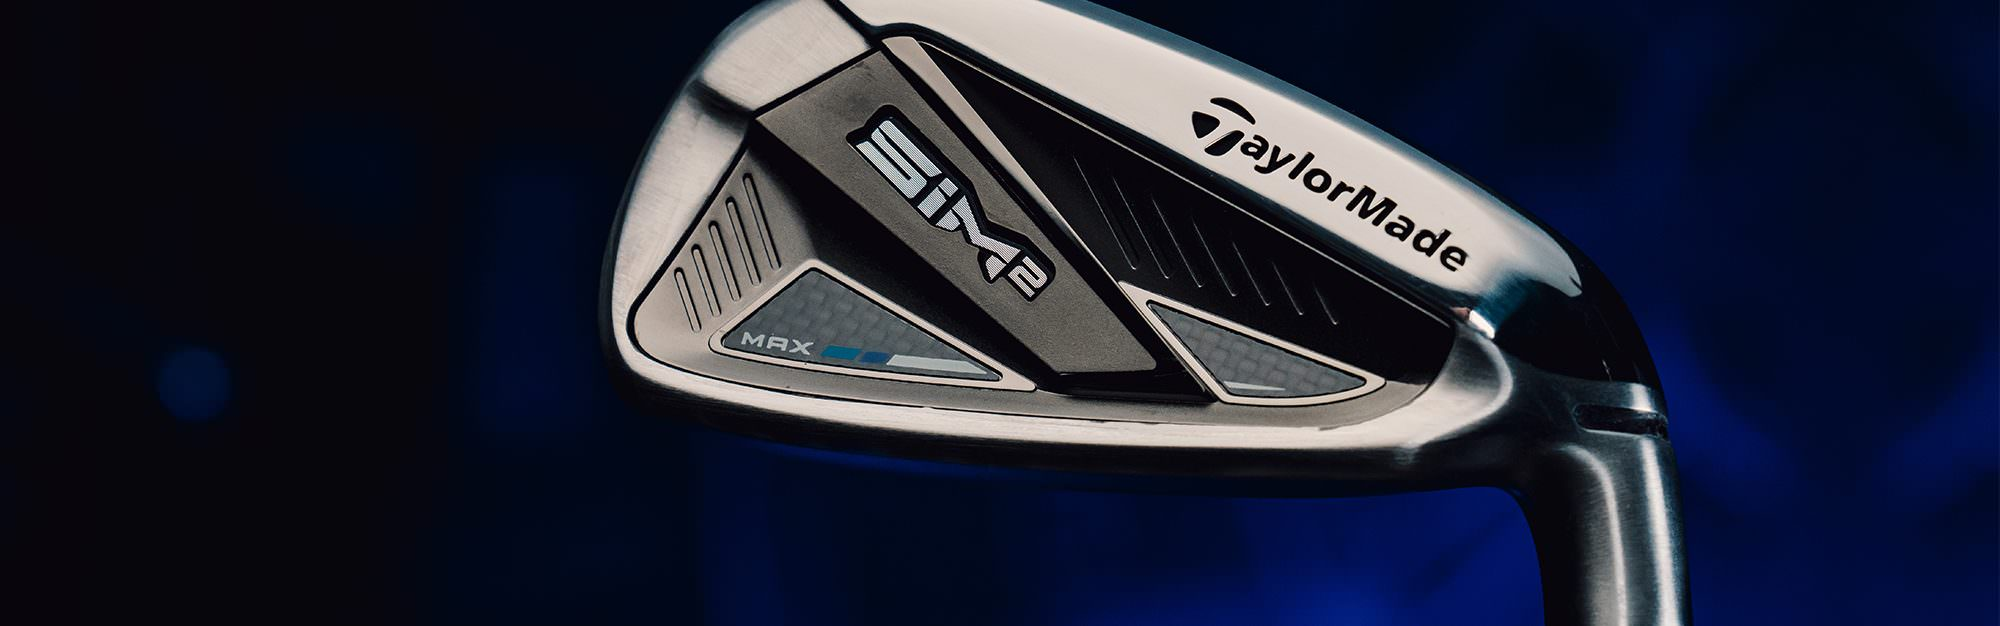 TaylorMade SIM2 irons review: Game improvement clubs taken to the next level